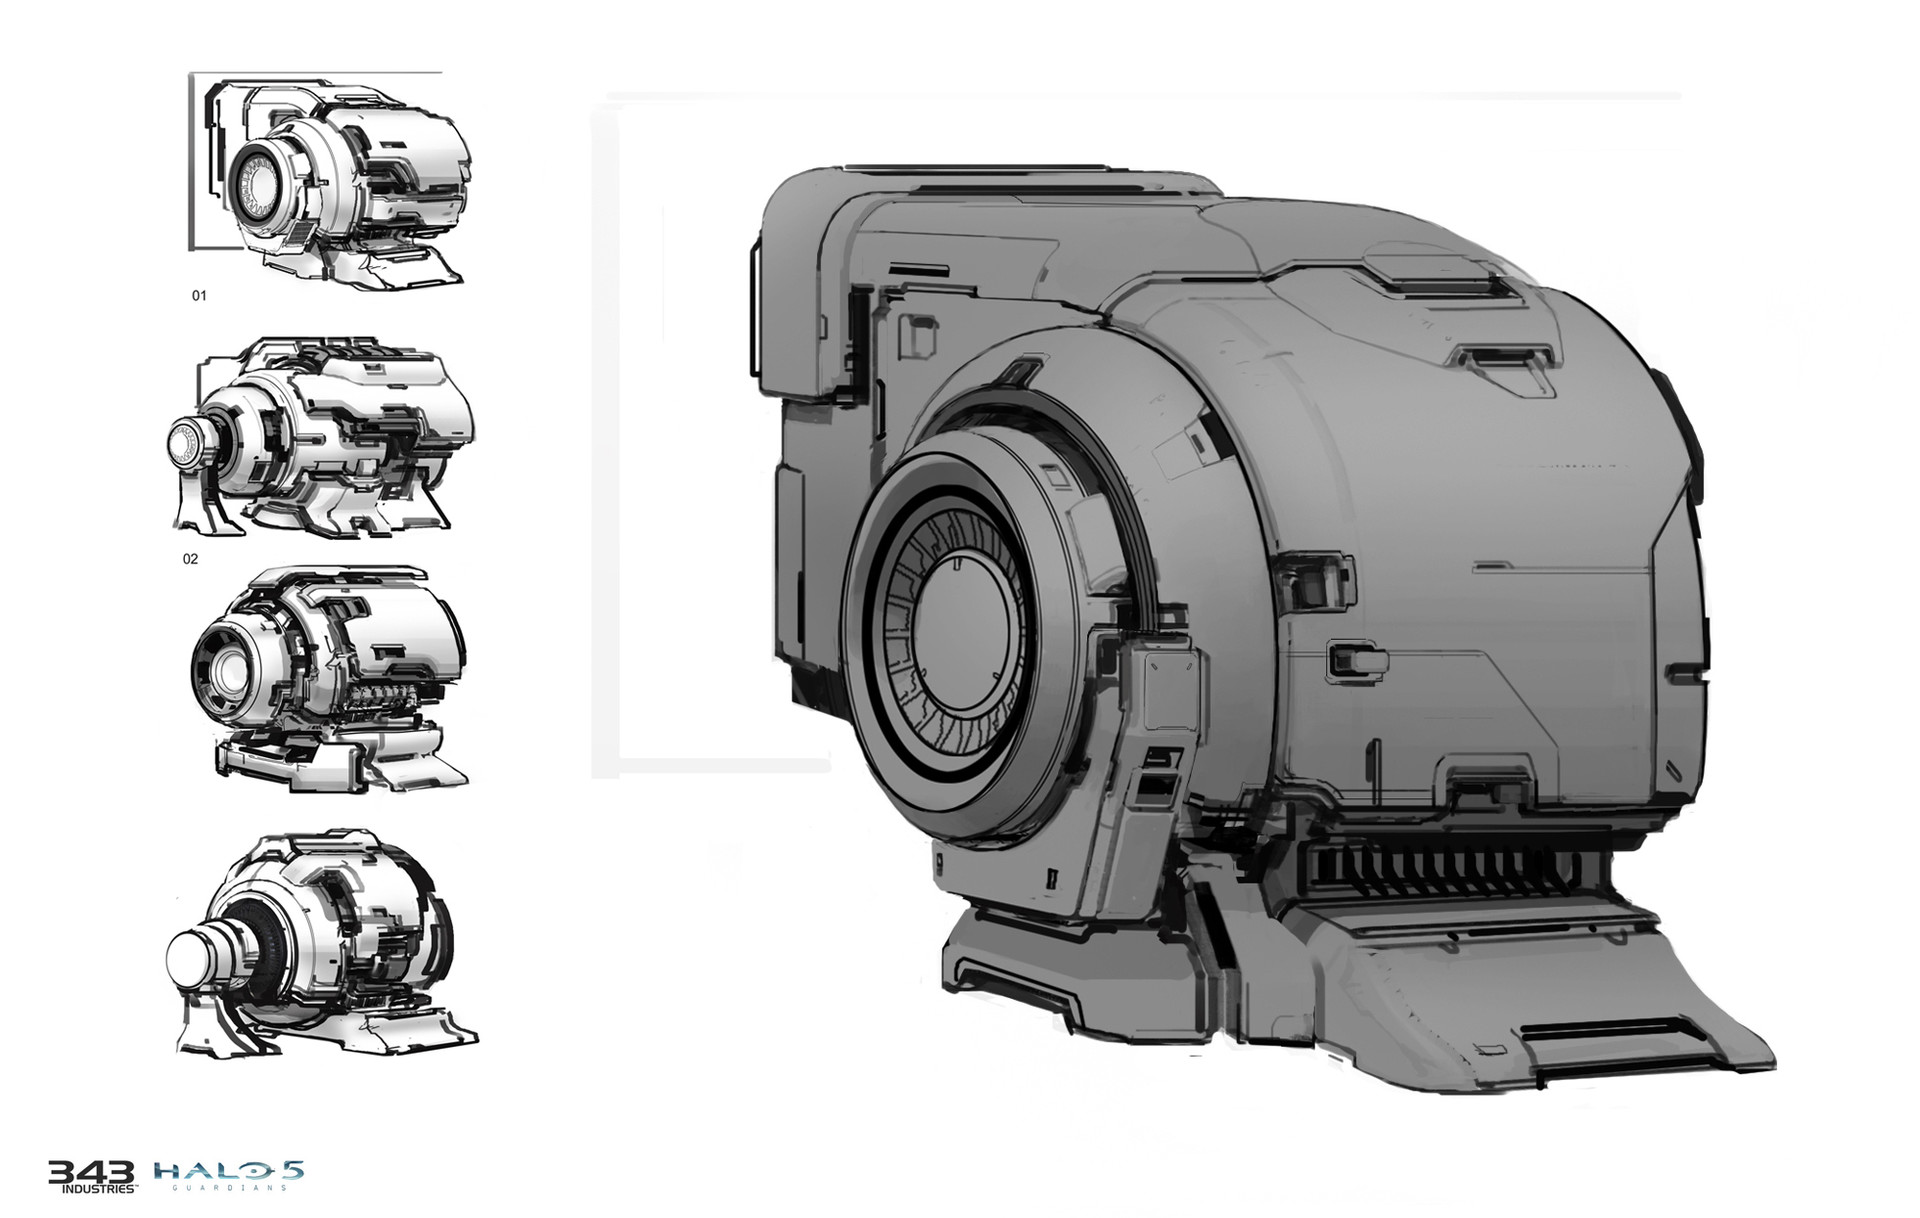 ArtStation - Portable battery, OBERFETT | Kirill Chepizhko ... |Conceptual Generator Drawing